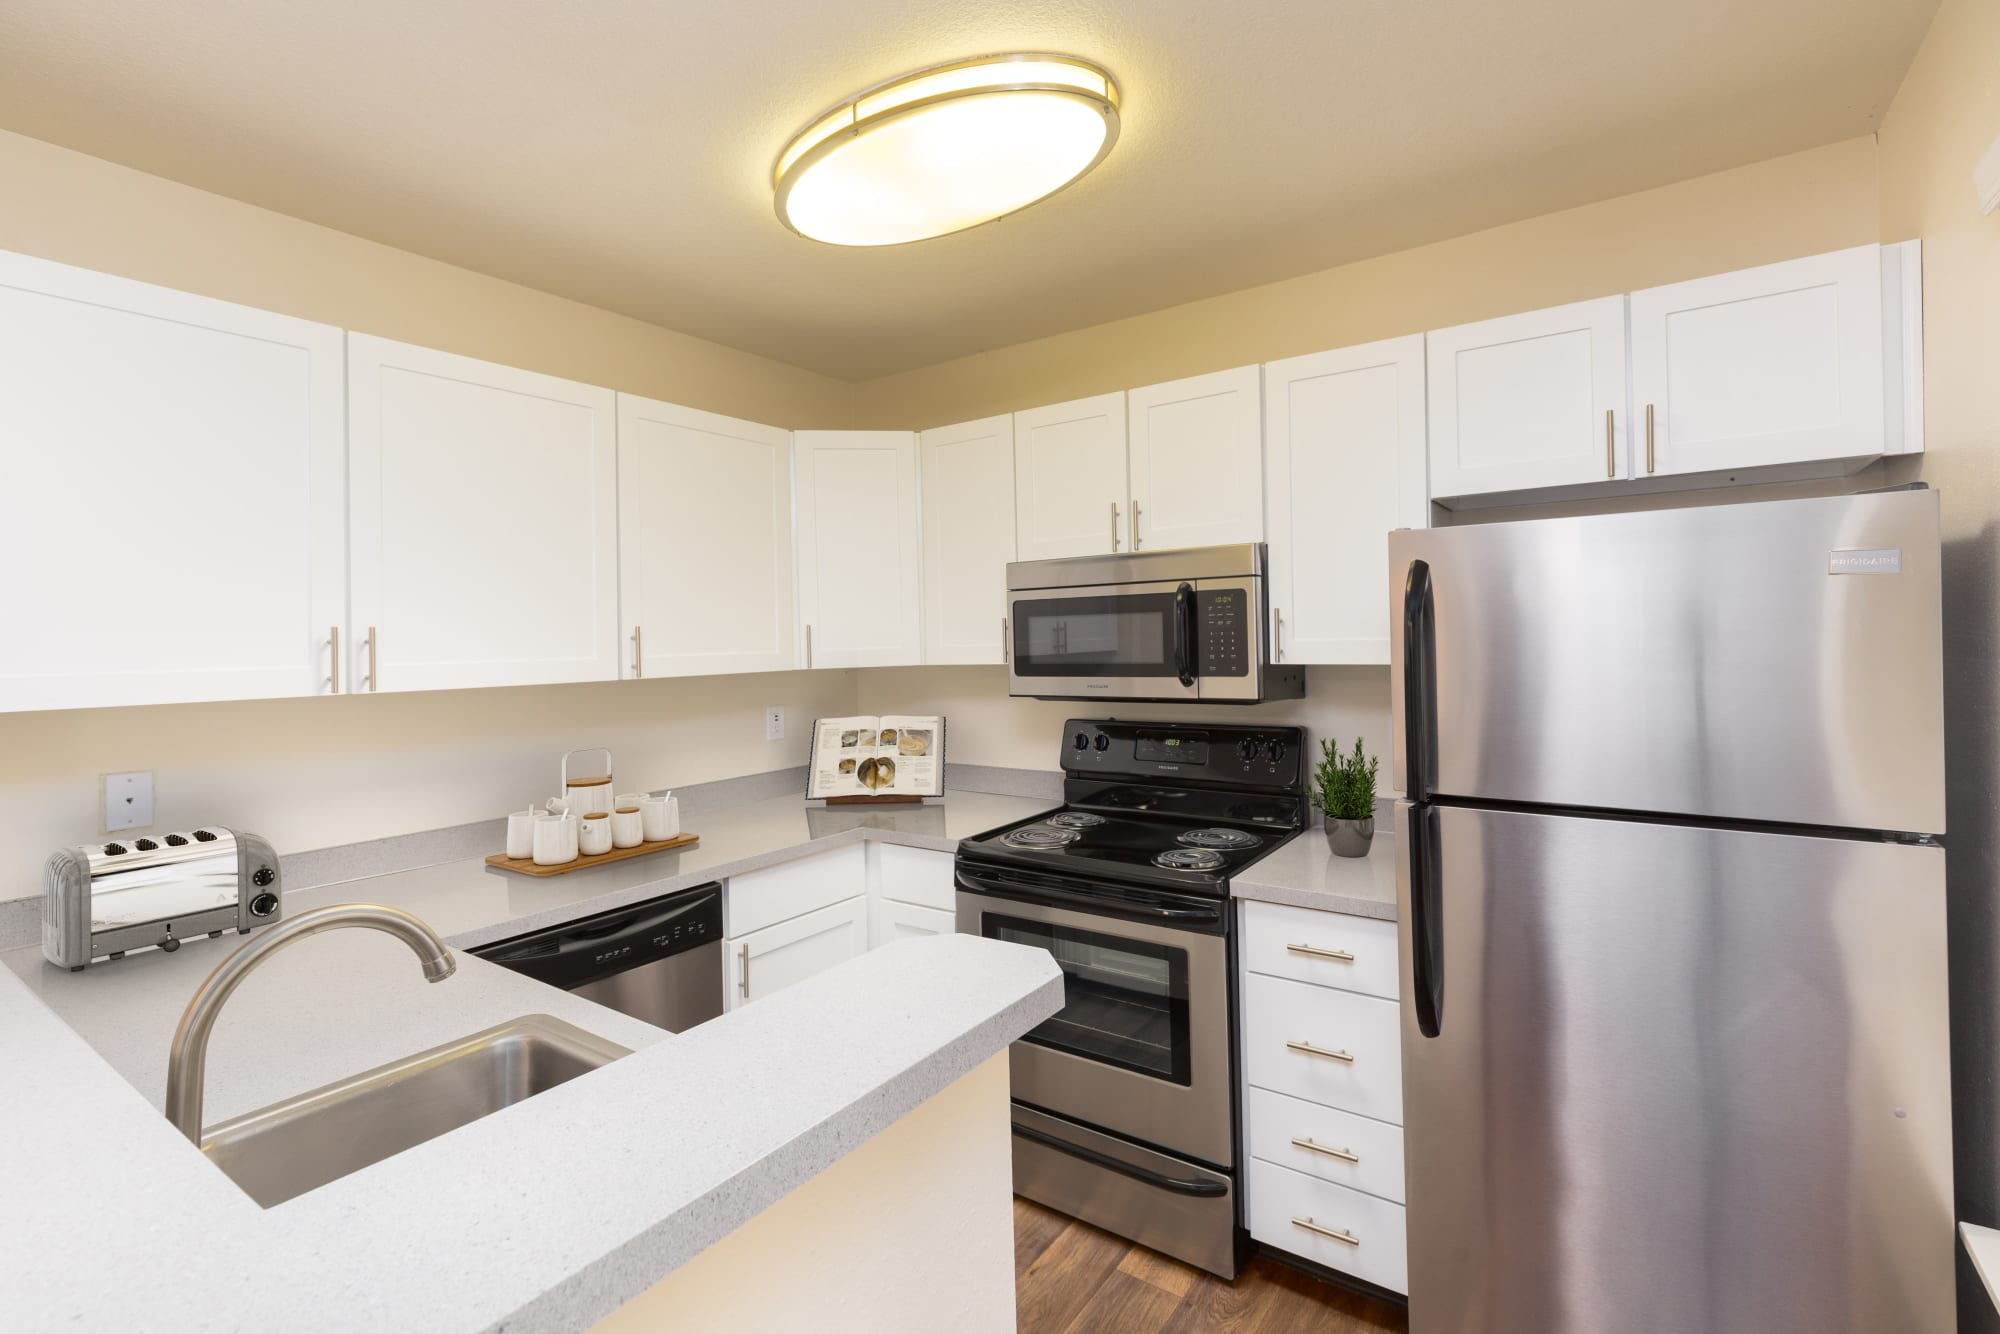 Updated kitchen with white cabinets at Autumn Chase Apartments in Vancouver, Washington